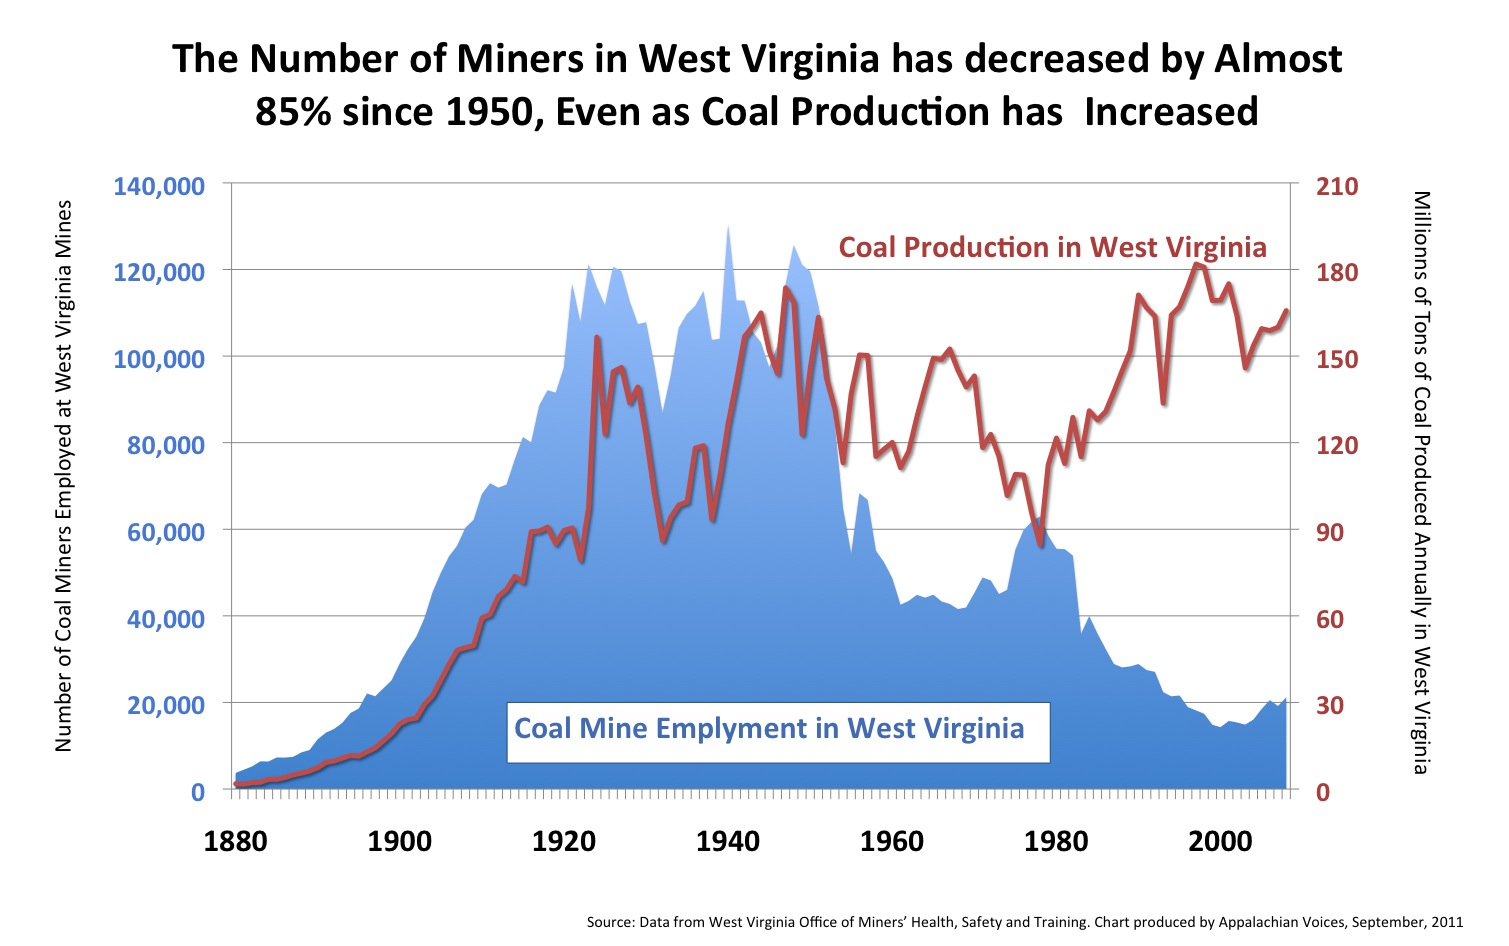 WV_Employment_vs_Production